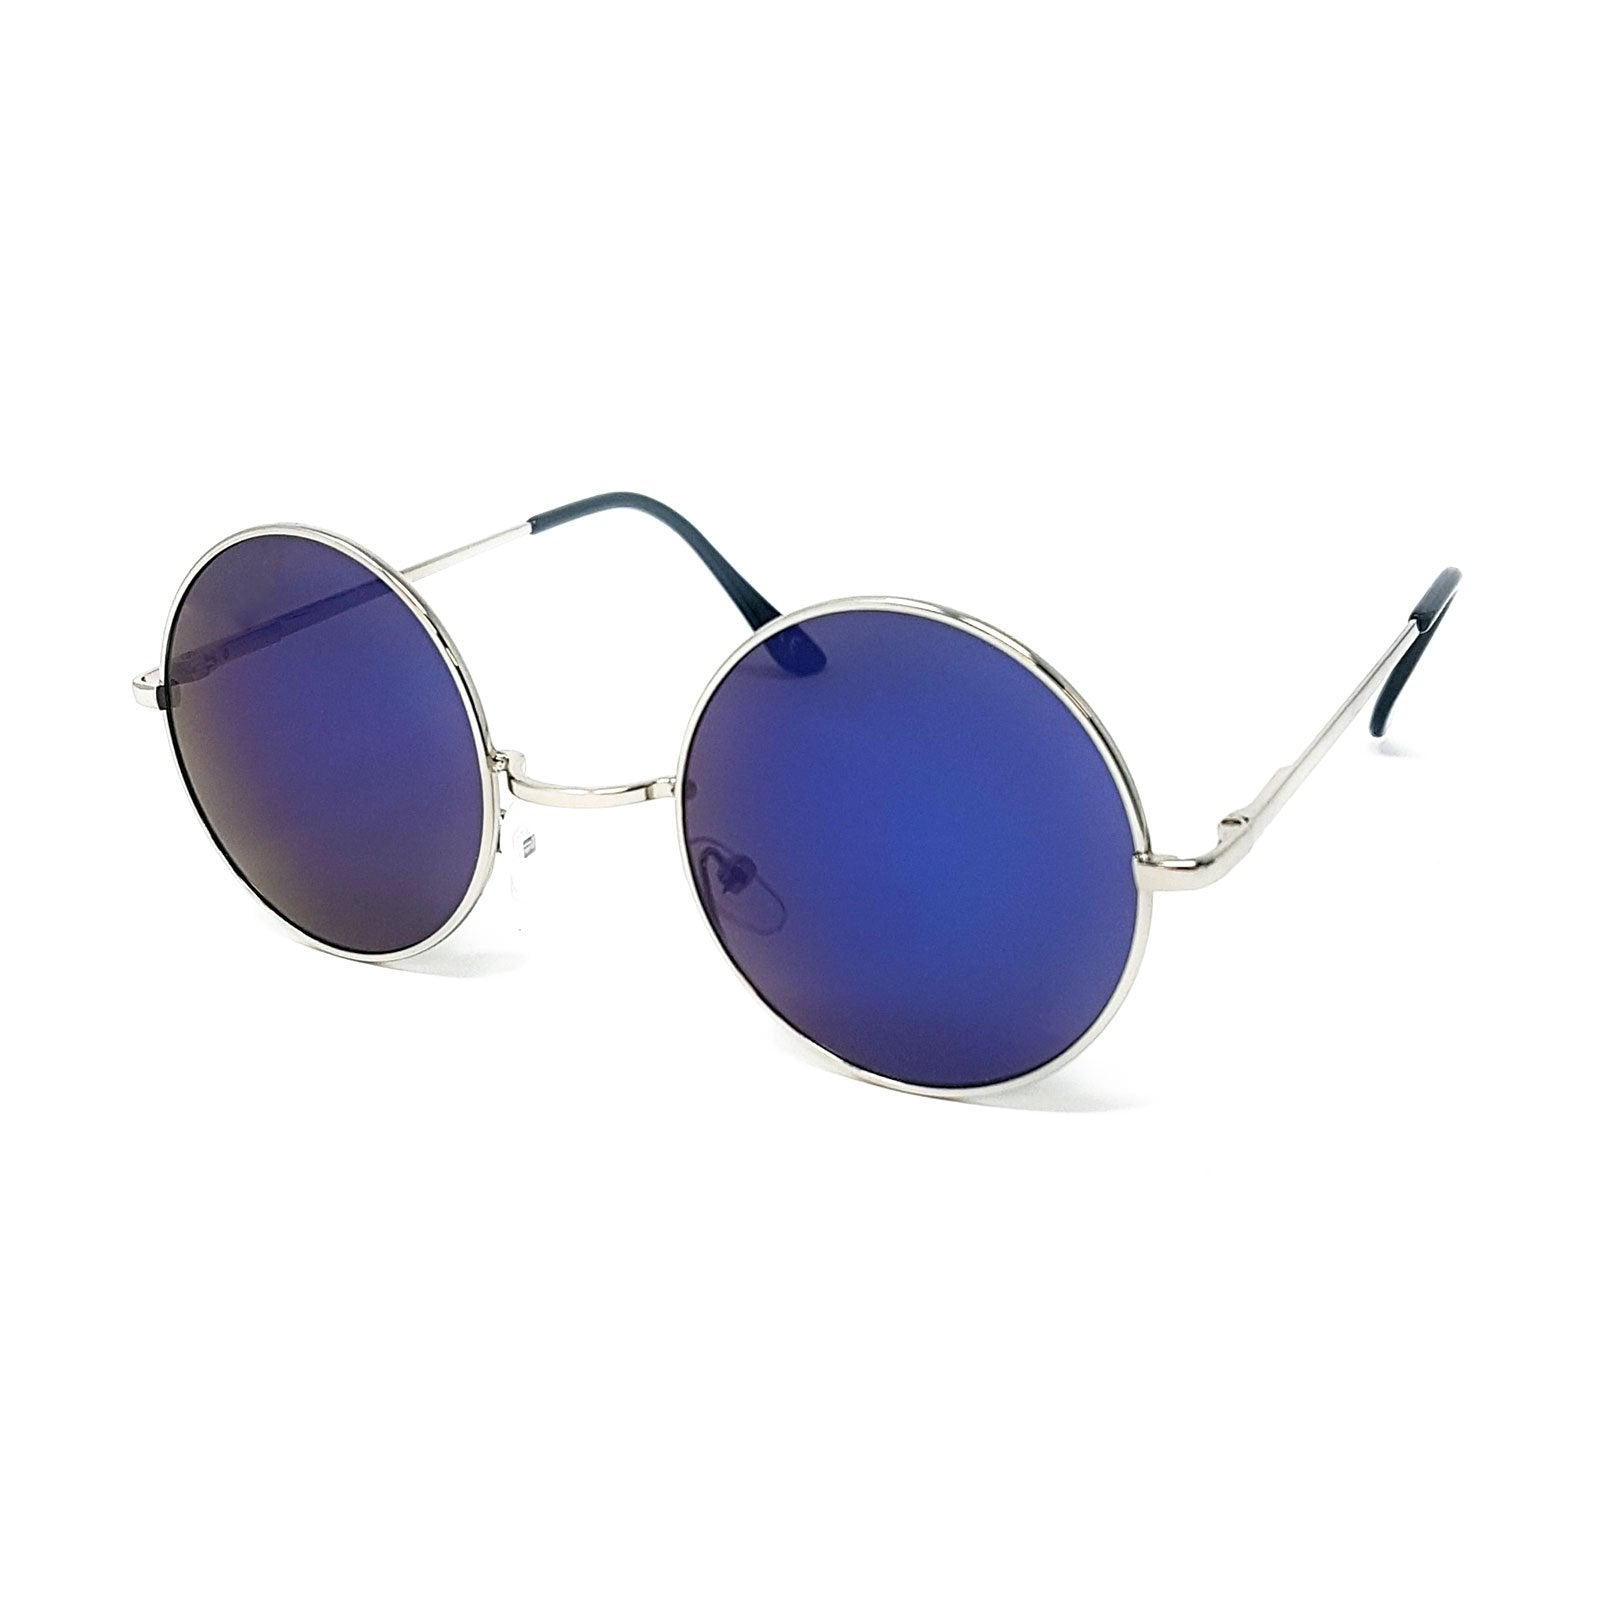 Wholesale Round Lens Sunglasses - Silver Frame, Blue Mirrored Lens